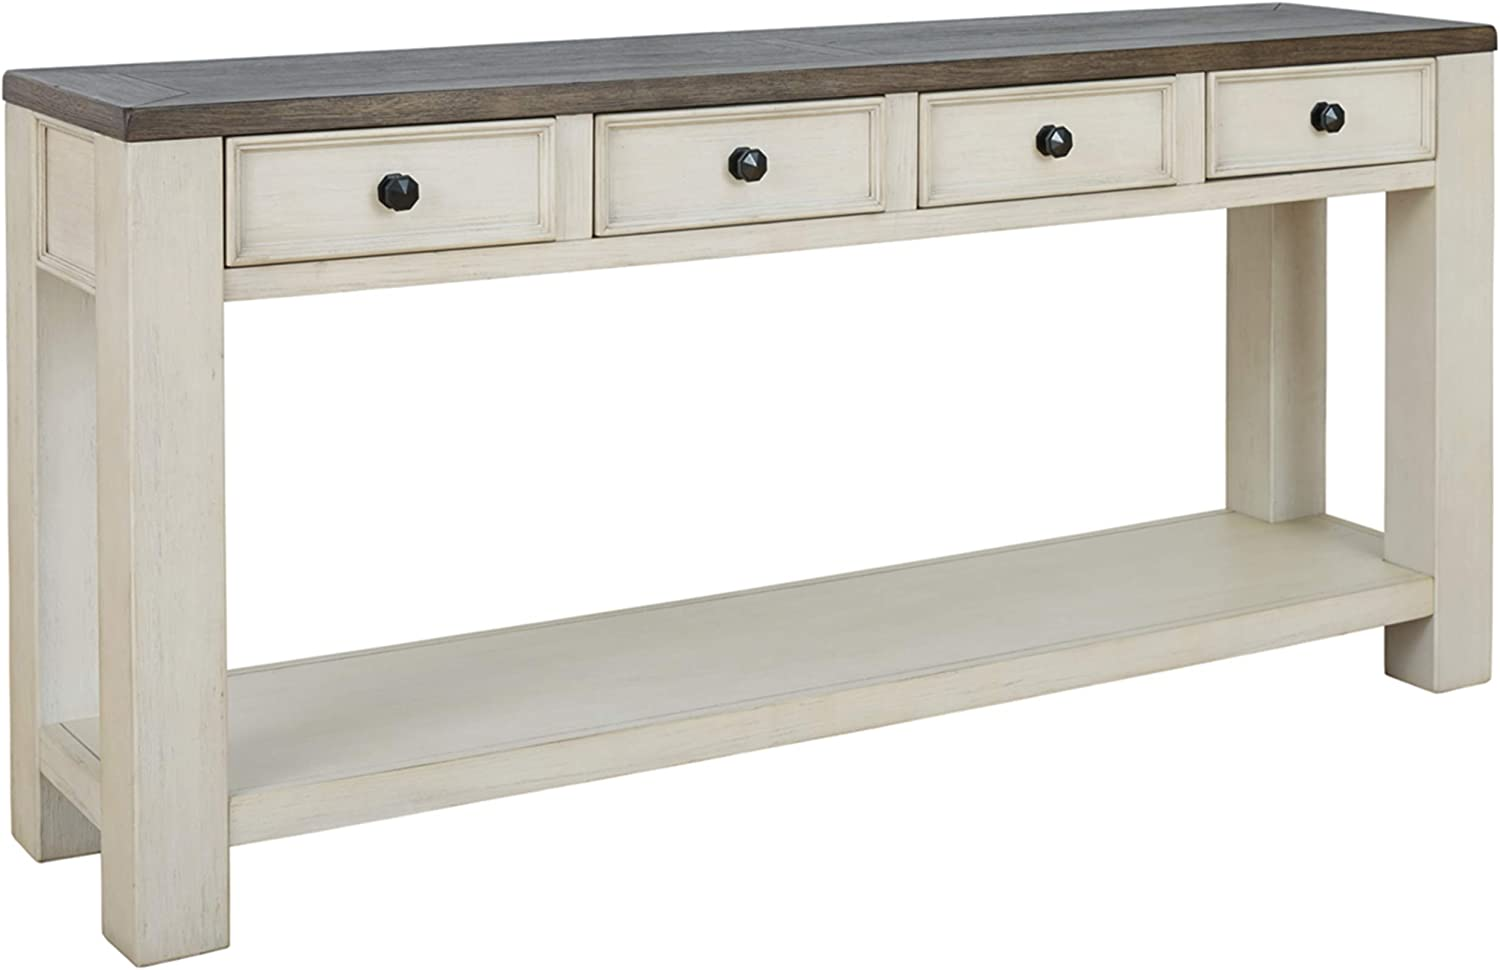 Signature Design by Ashley - Bolanburg Console Table, Brown/White